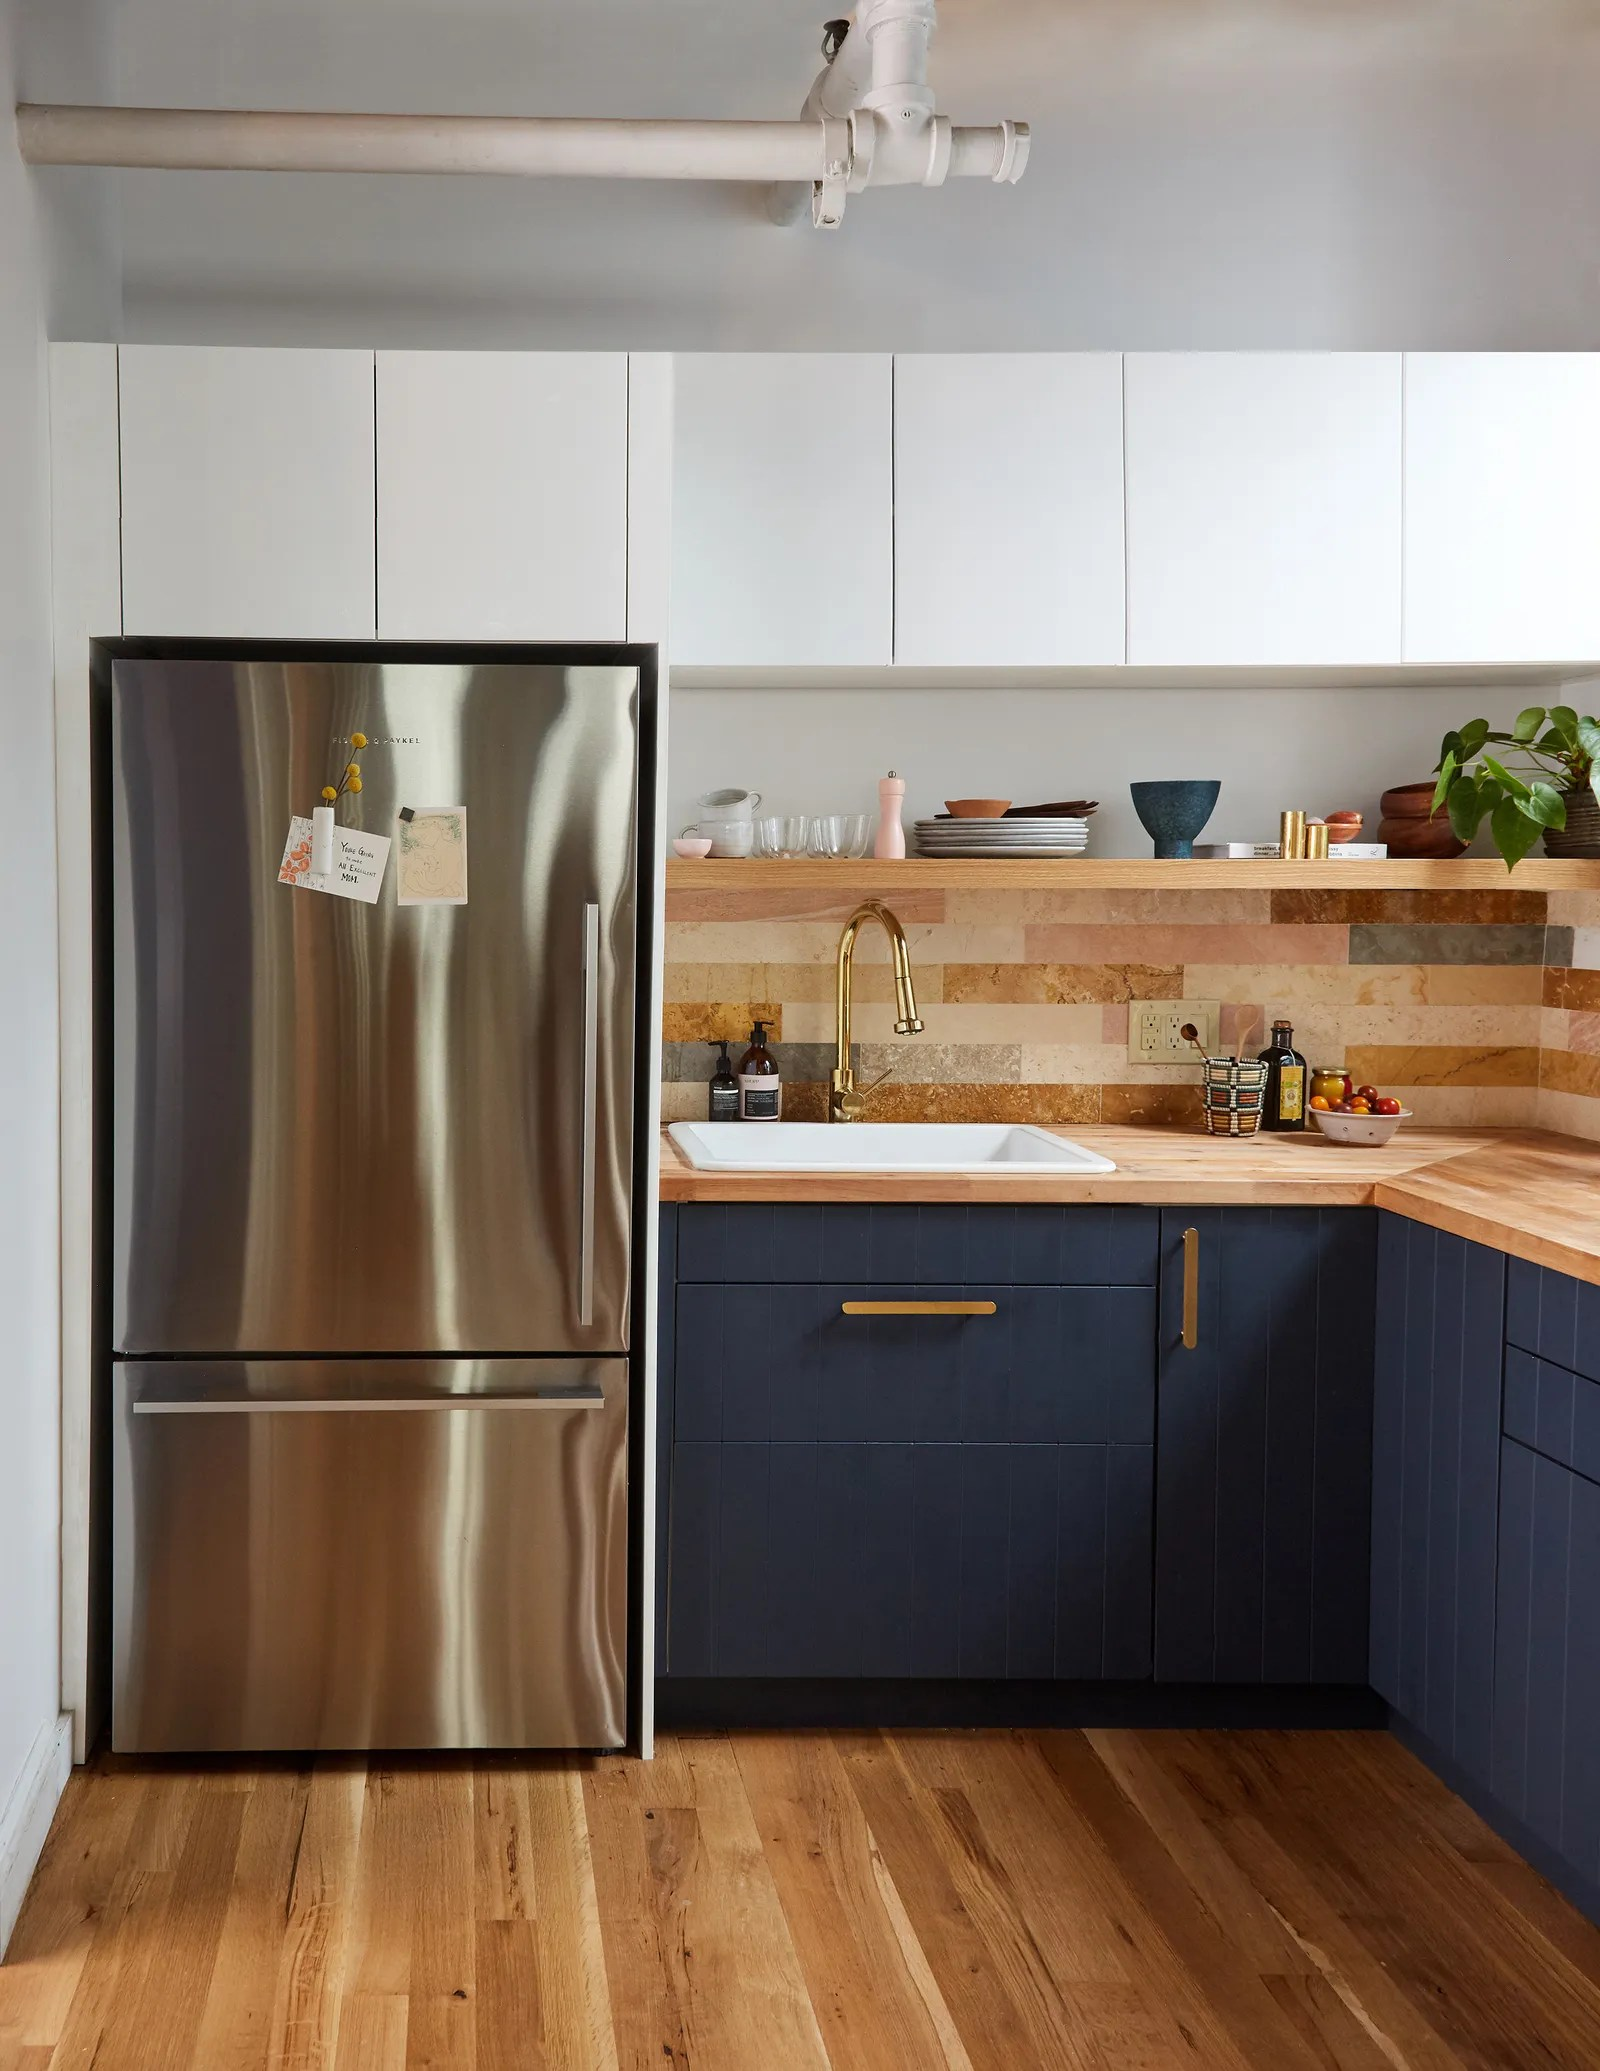 You Ll Love The Mix Of High And Low In This Small Kitchen Remodel Architectural Digest